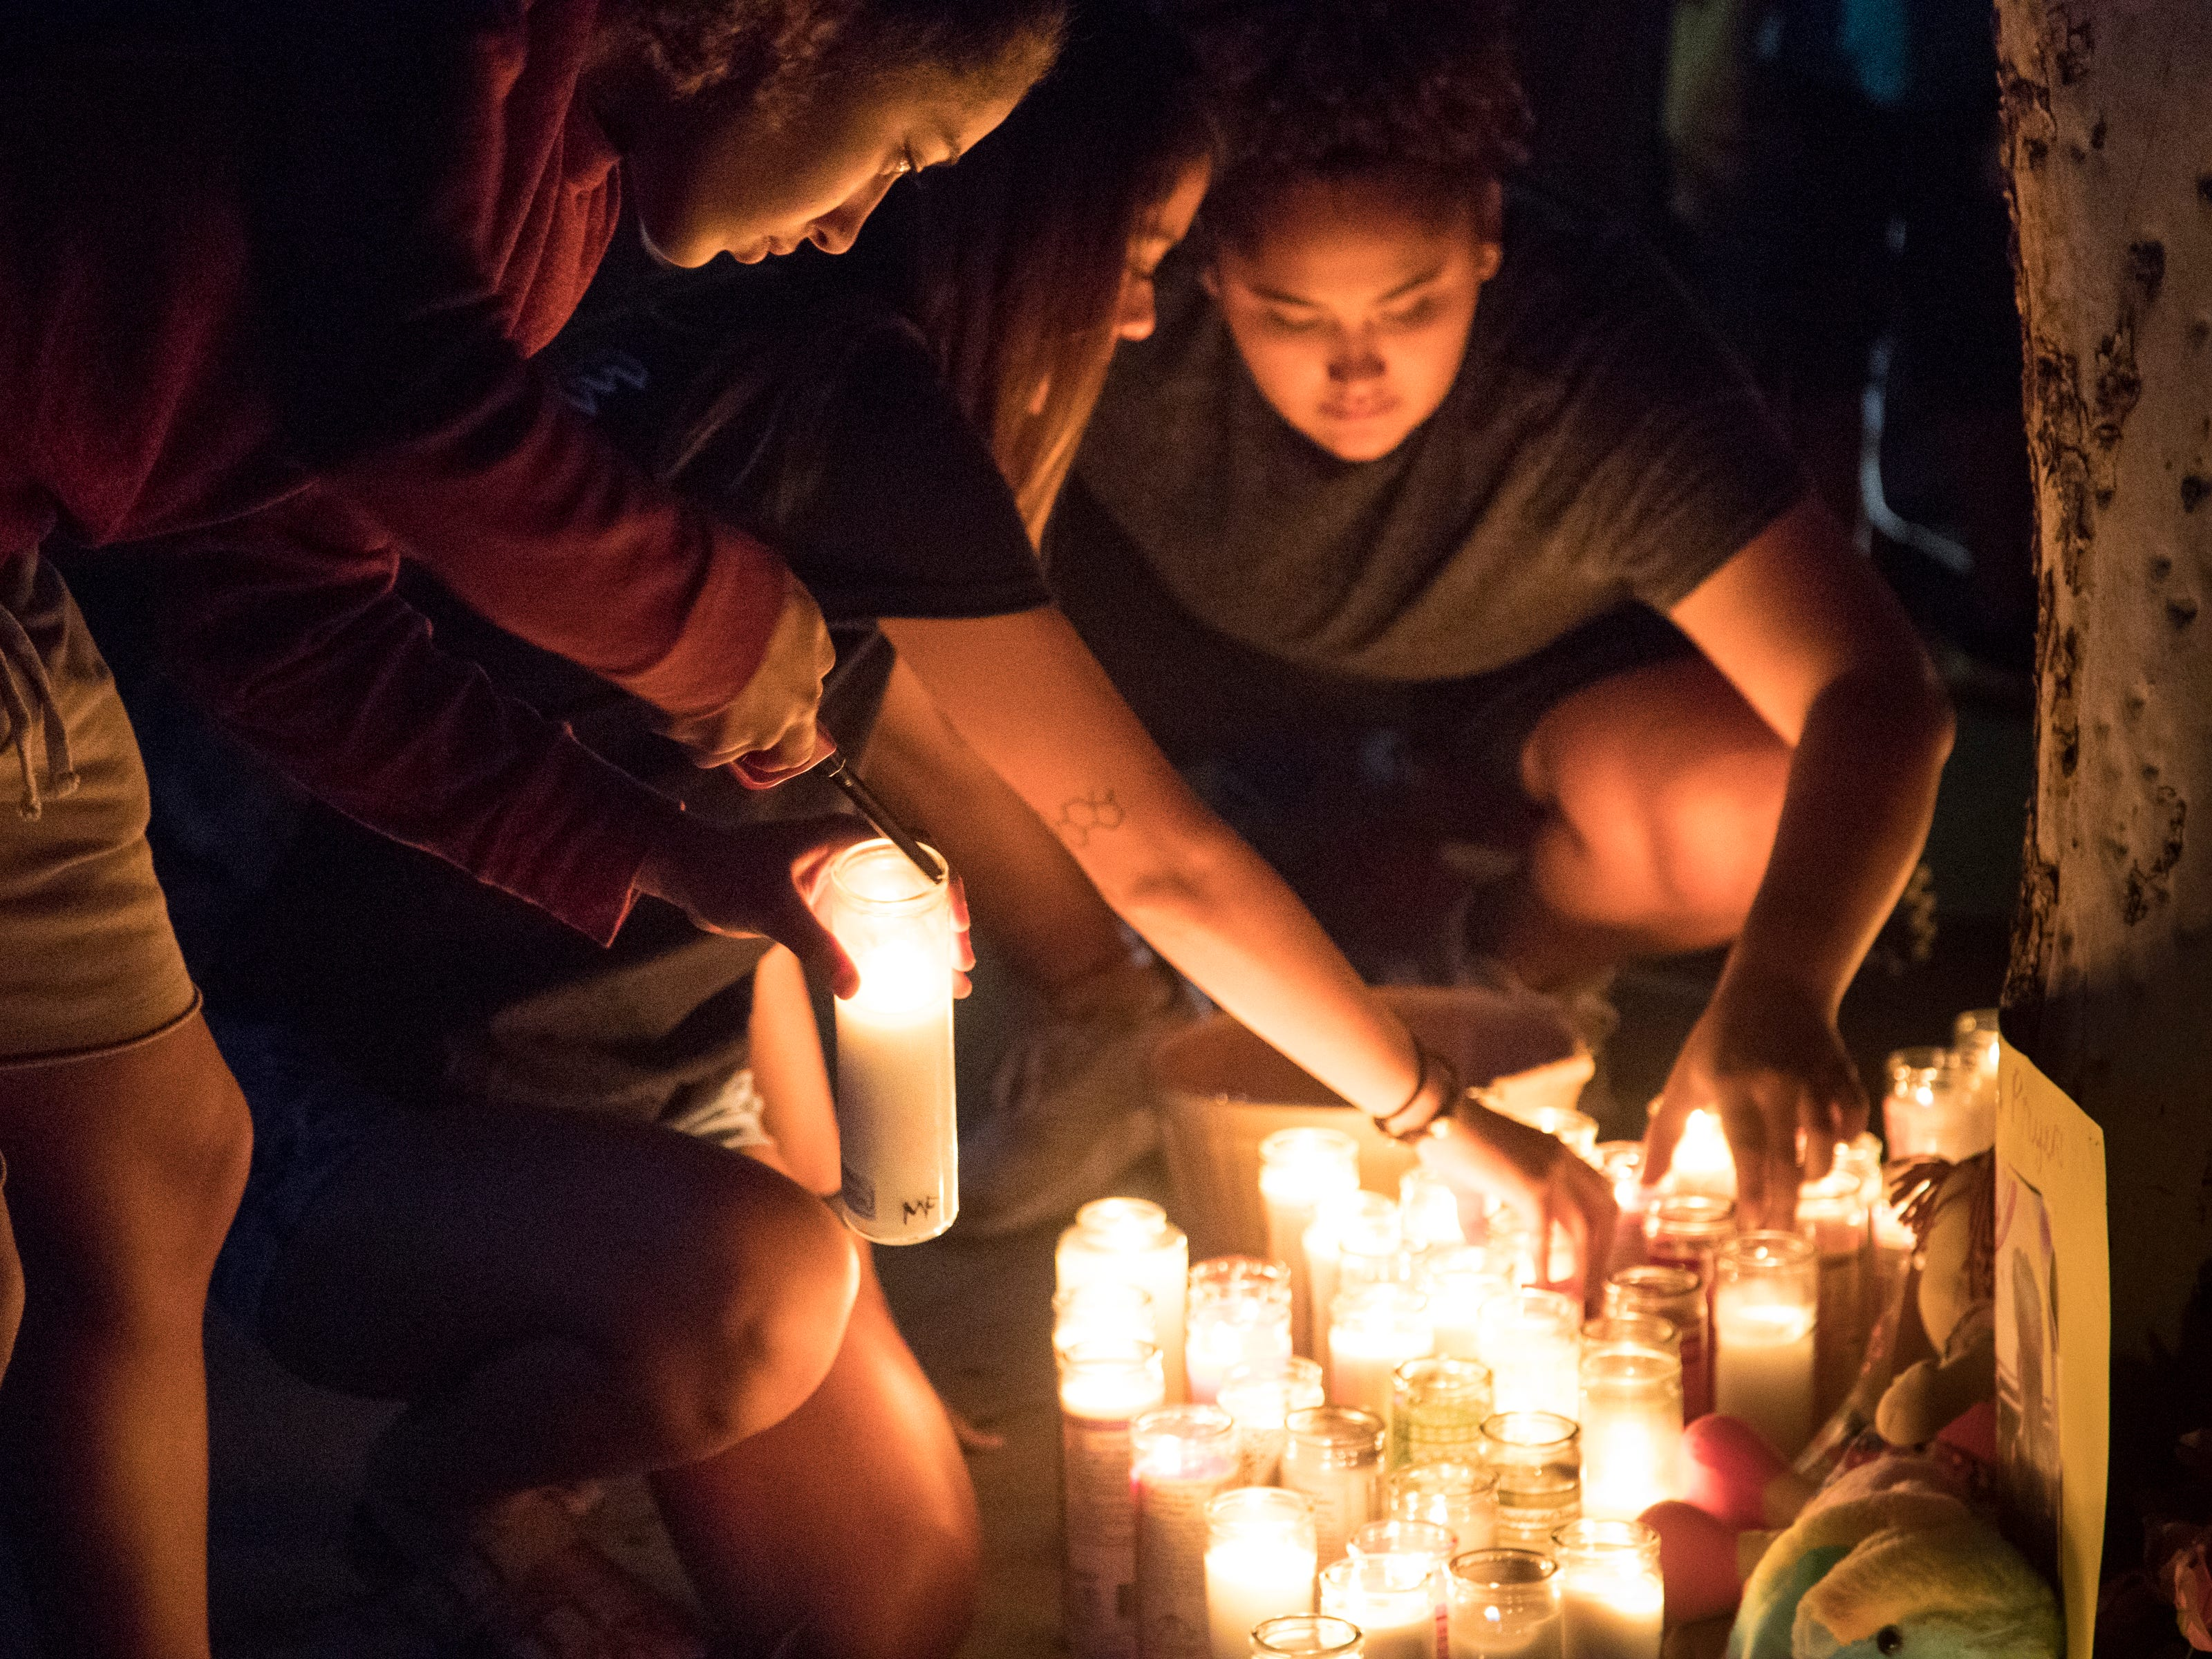 Jahleza Clark (left, family friend) and others light candles during a vigil for Summer Bell Brown on April 5, 2019.